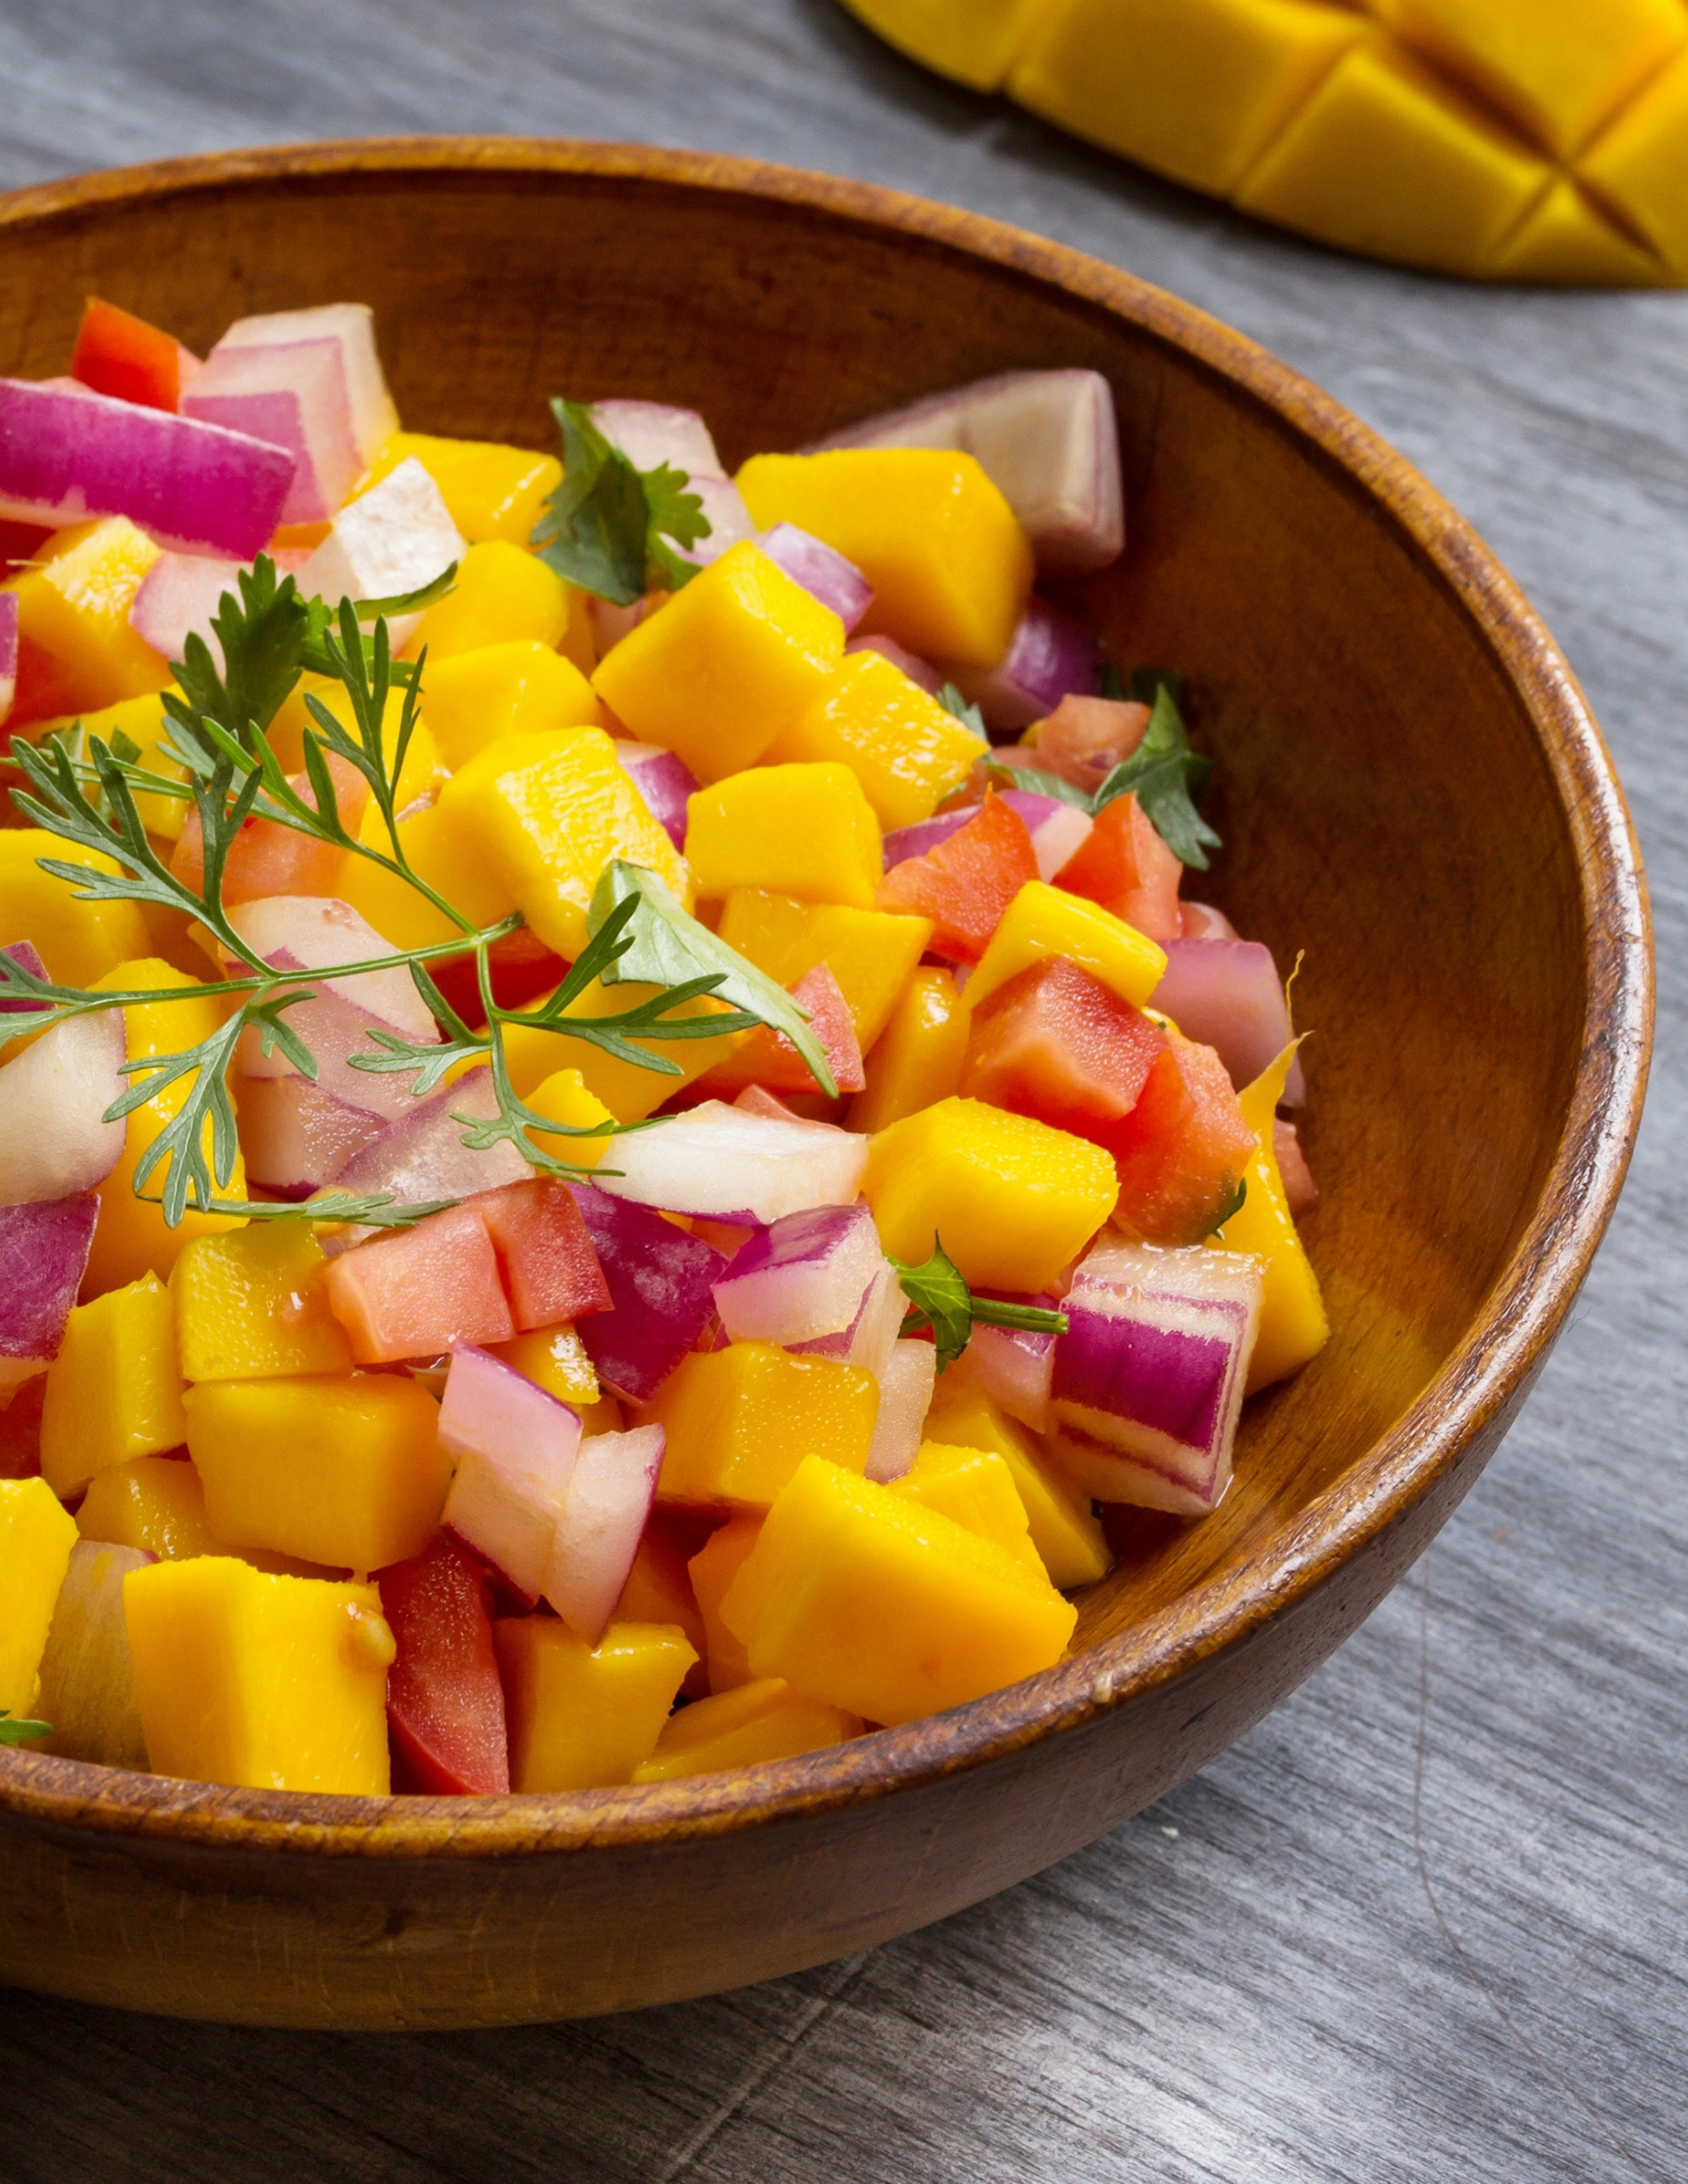 Mango Papaya Salsa - 1 Mango, cubed - 1/2″ chunks1 Papaya, seeded &cubed - 1/2″ chunks1/2 Medium red onion -finely chopped1 Medium jalapeno, seeds removed & chopped1 Bunch of cilantro -leaves only - finely chopped1 lime - Juicedsalt & pepper to tasteSimply stir ingredients in a medium bowl and serve with grilled fish (or use as a dip.)